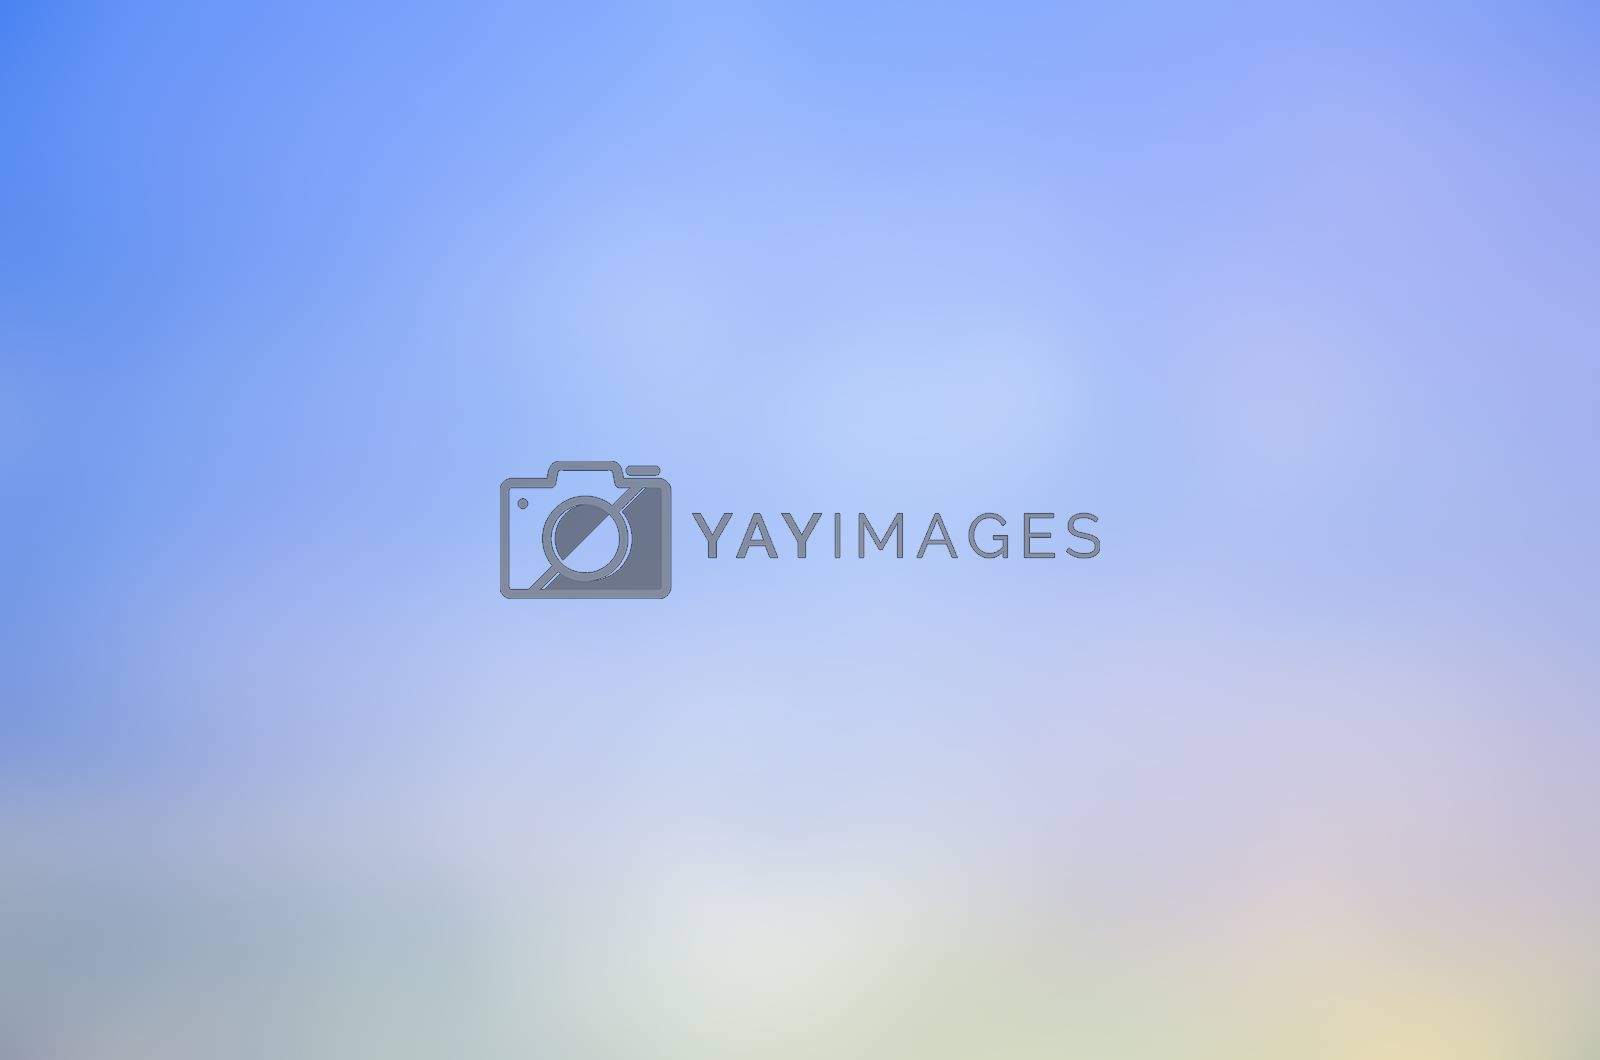 Royalty free image of Blurred color background  by pixbox77